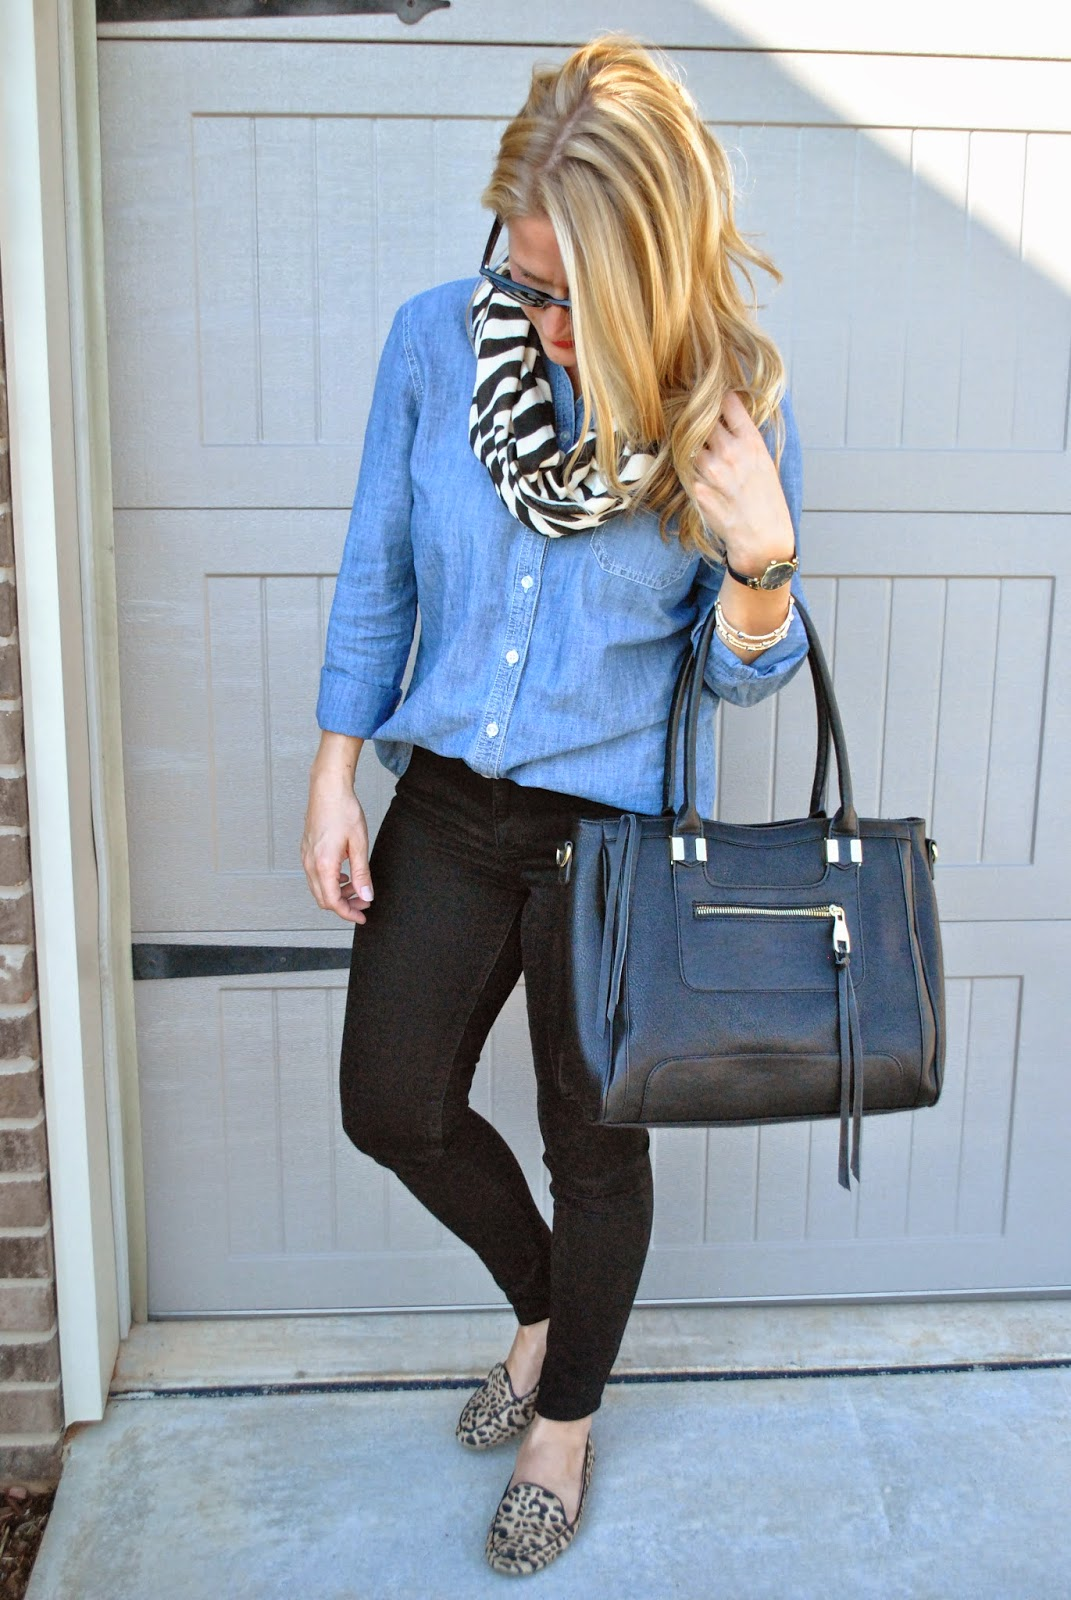 Old Navy Chambray Shirt Old Navy Zebra Scarf Black Skinnies Steve Madden Oversize Tote Leopard Flats